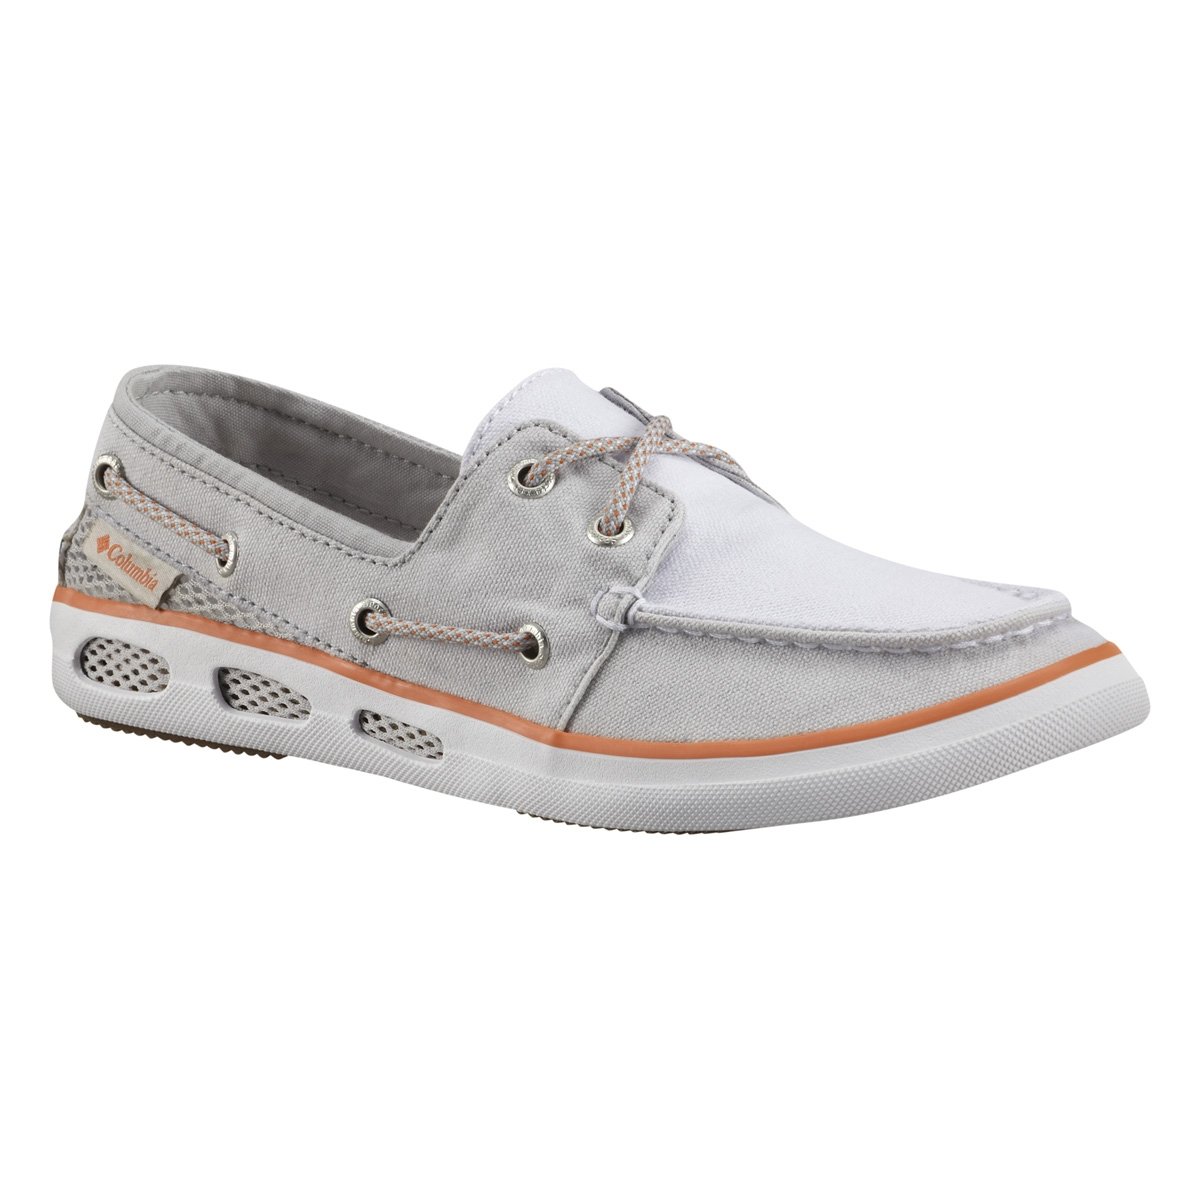 Columbia vulc n vent boat canvas shoes women 39 s cool for Columbia fishing shoes